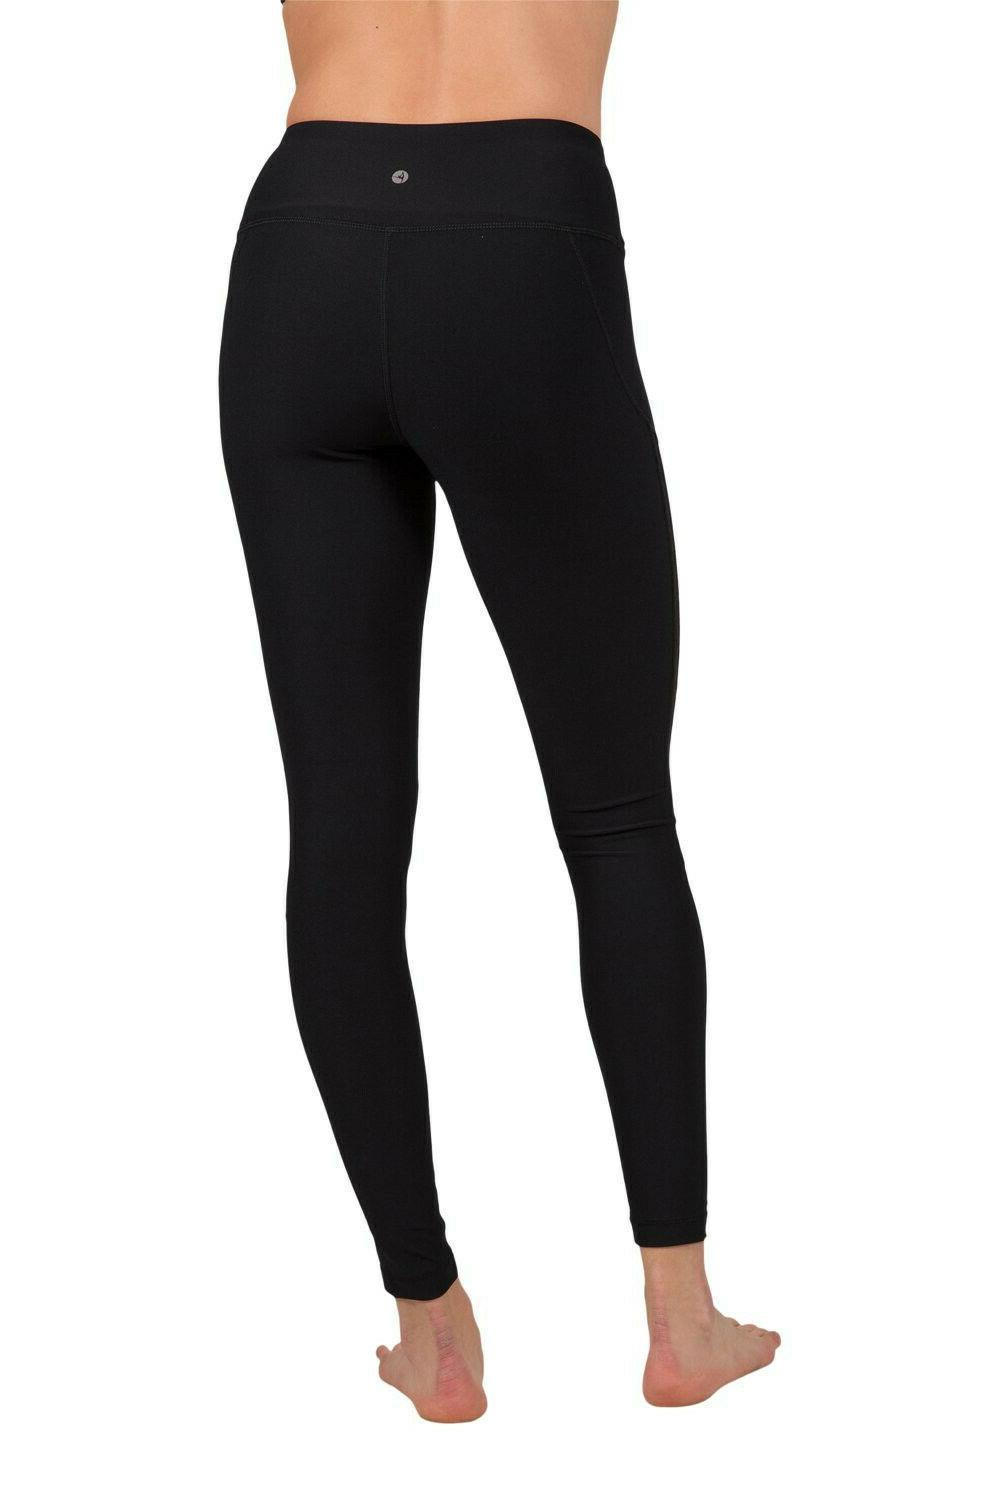 Women's Mystery Leggings L